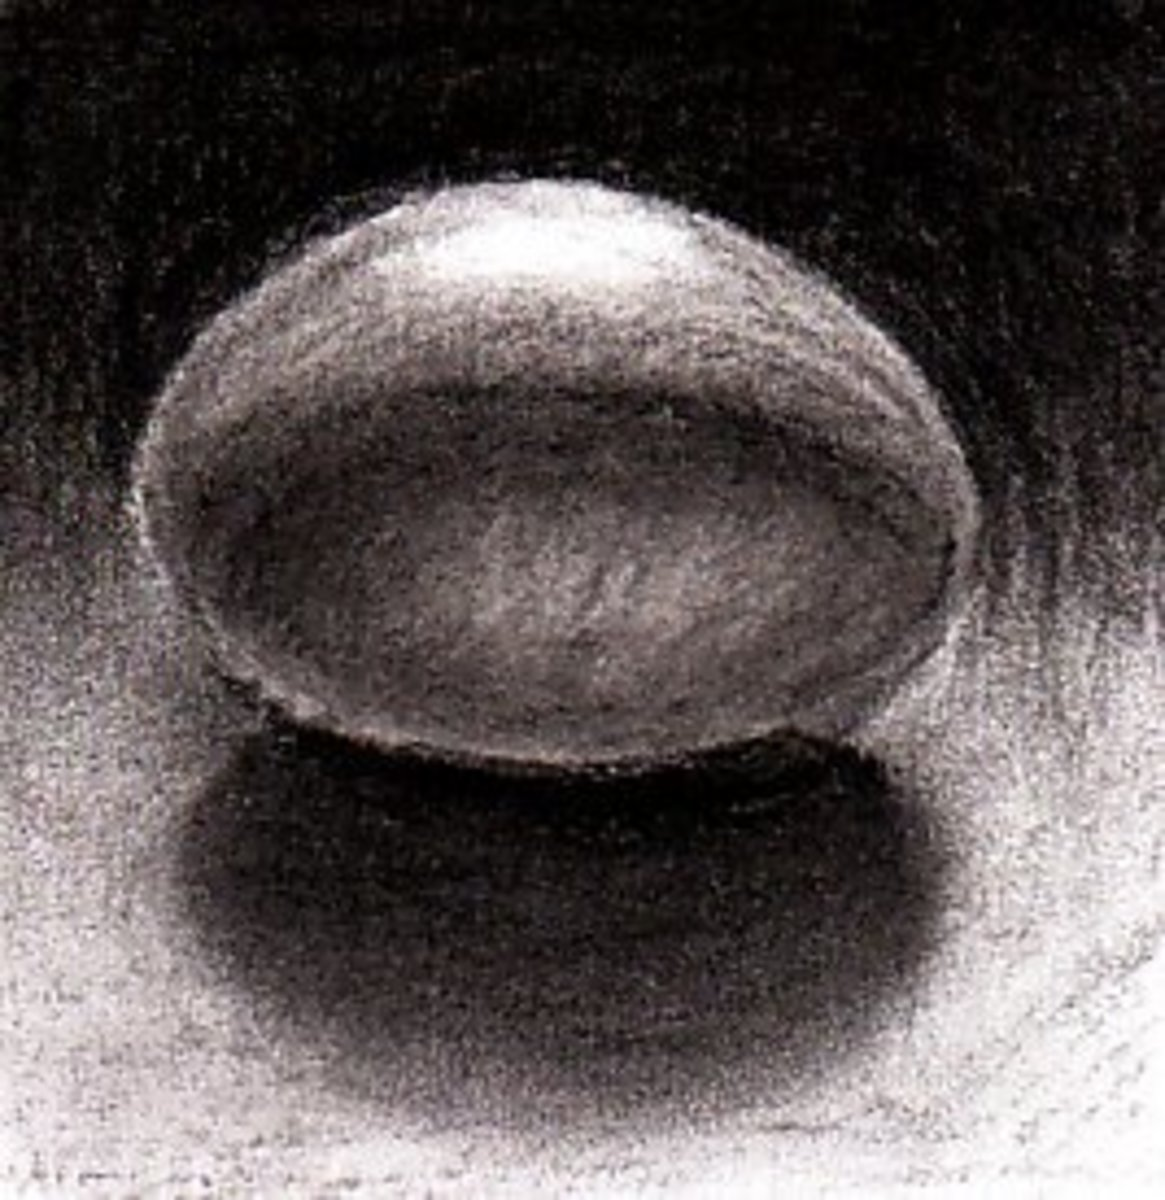 The completed egg drawing by Robert A. Sloan, charcoal pencil on paper.